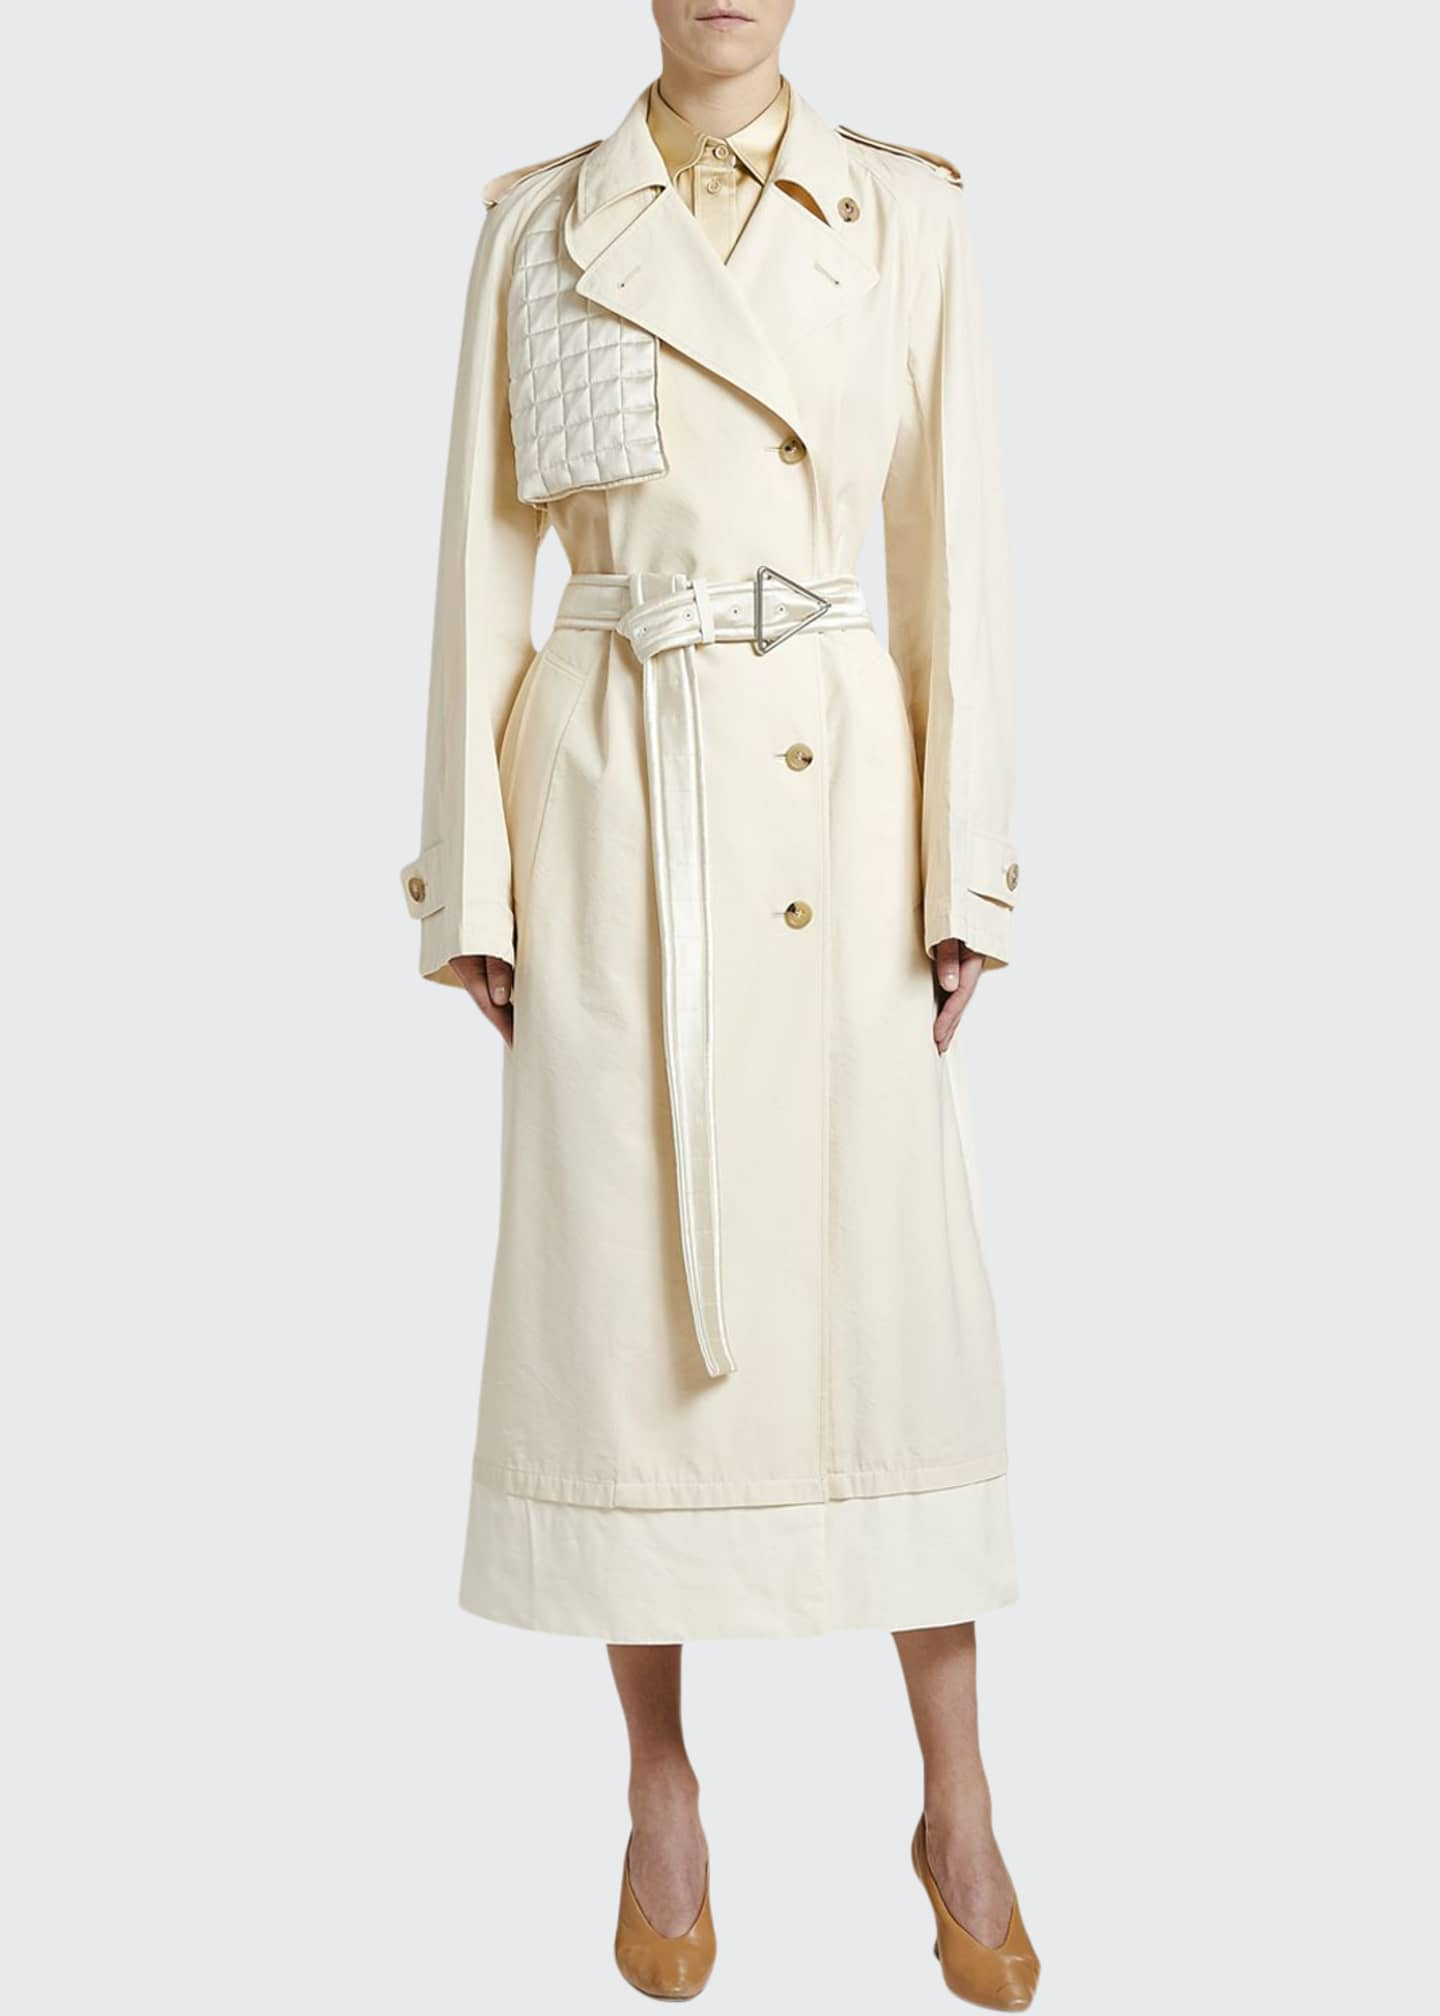 Bottega Veneta Double-Breasted Asymmetric Trench Coat